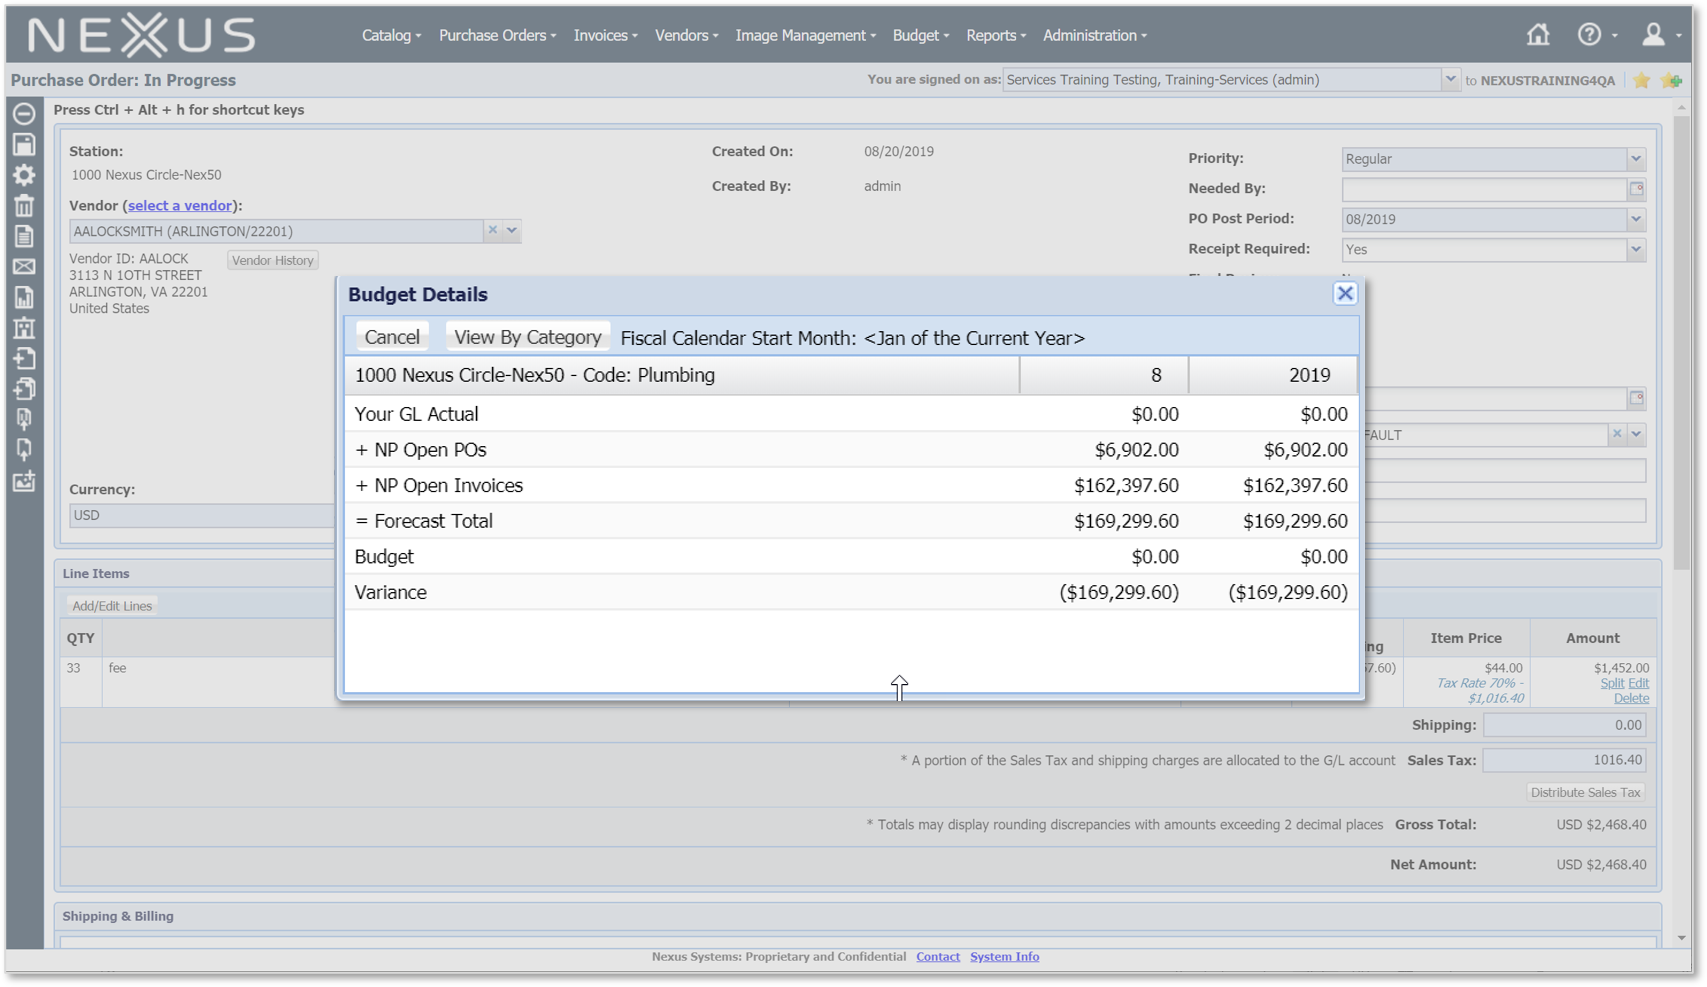 View how your electronic purchase order compares to budget and actualas